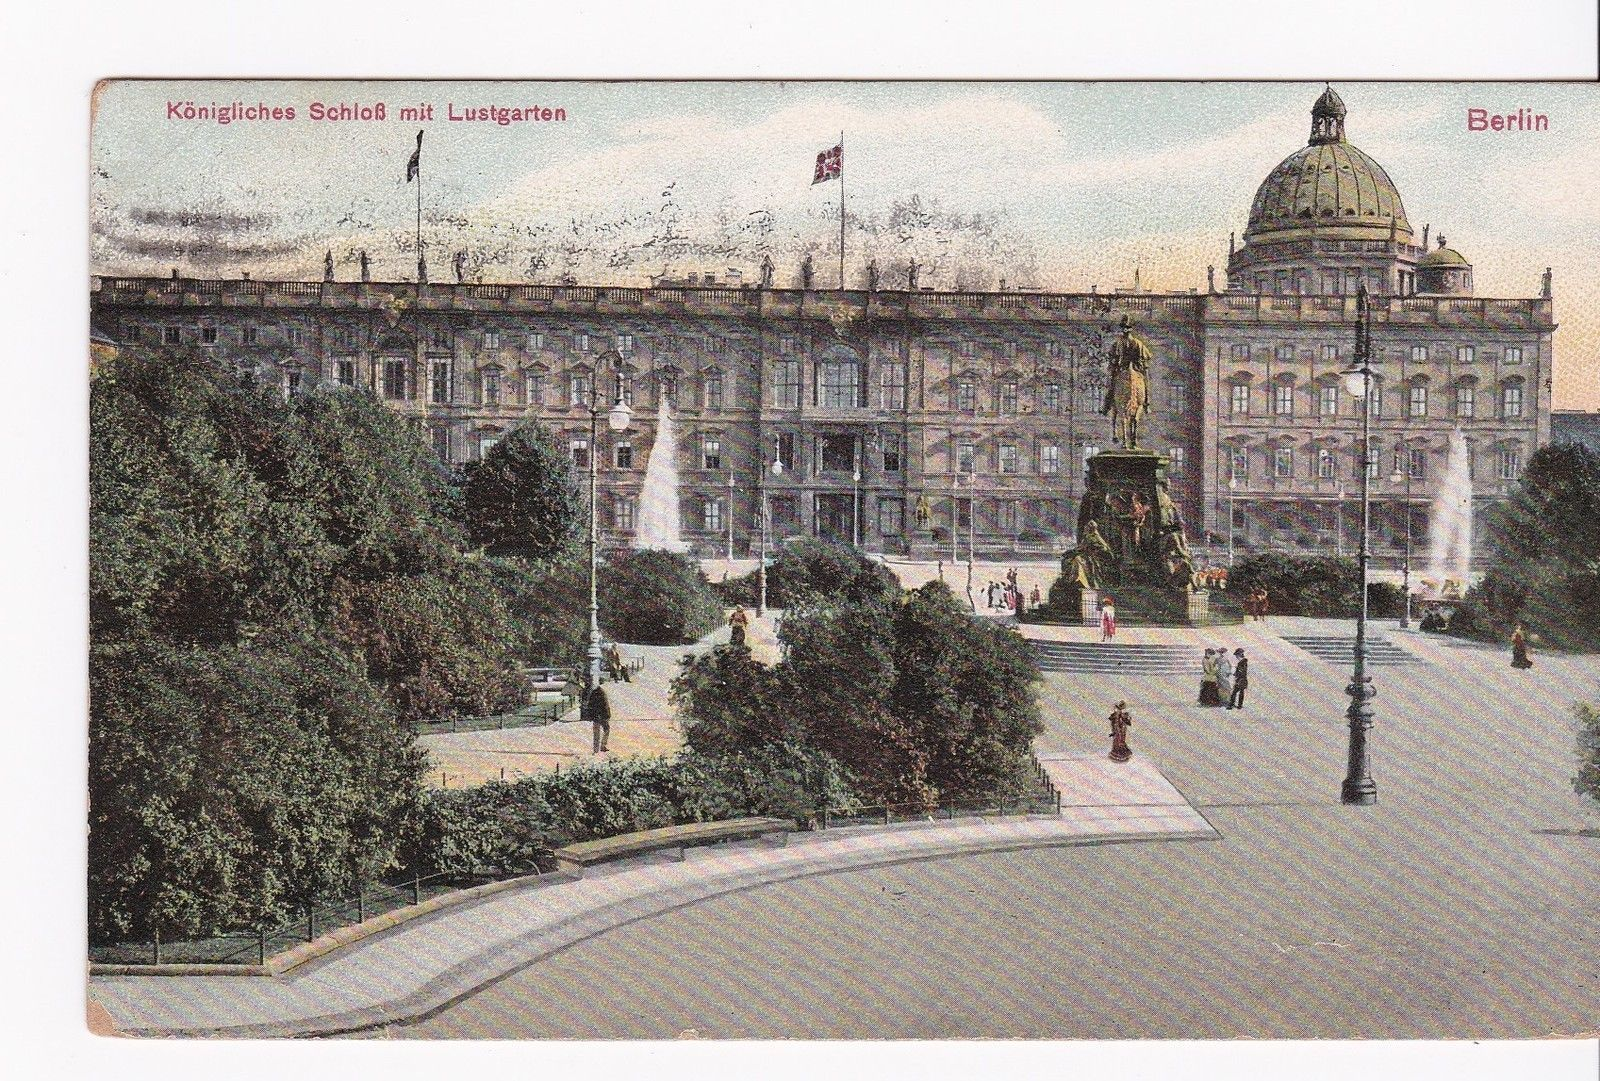 Primary image for KONIGLICHESBERLIN VINTAGE POSTCARD BURLINGTON, VT 12/26/1908 FLAG CANCEL